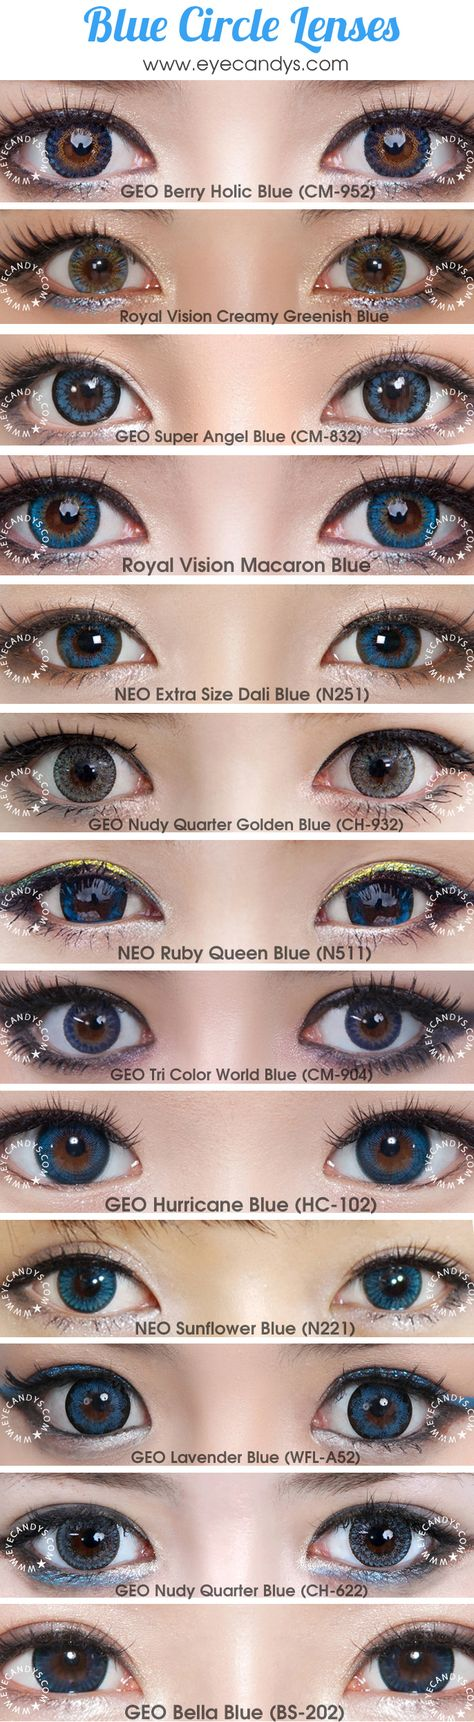 Liz eye color contact lenses 20 colors colored contacts color blue circle lenses colored contact lens shades of aqua turquoise and teal evoke nvjuhfo Image collections